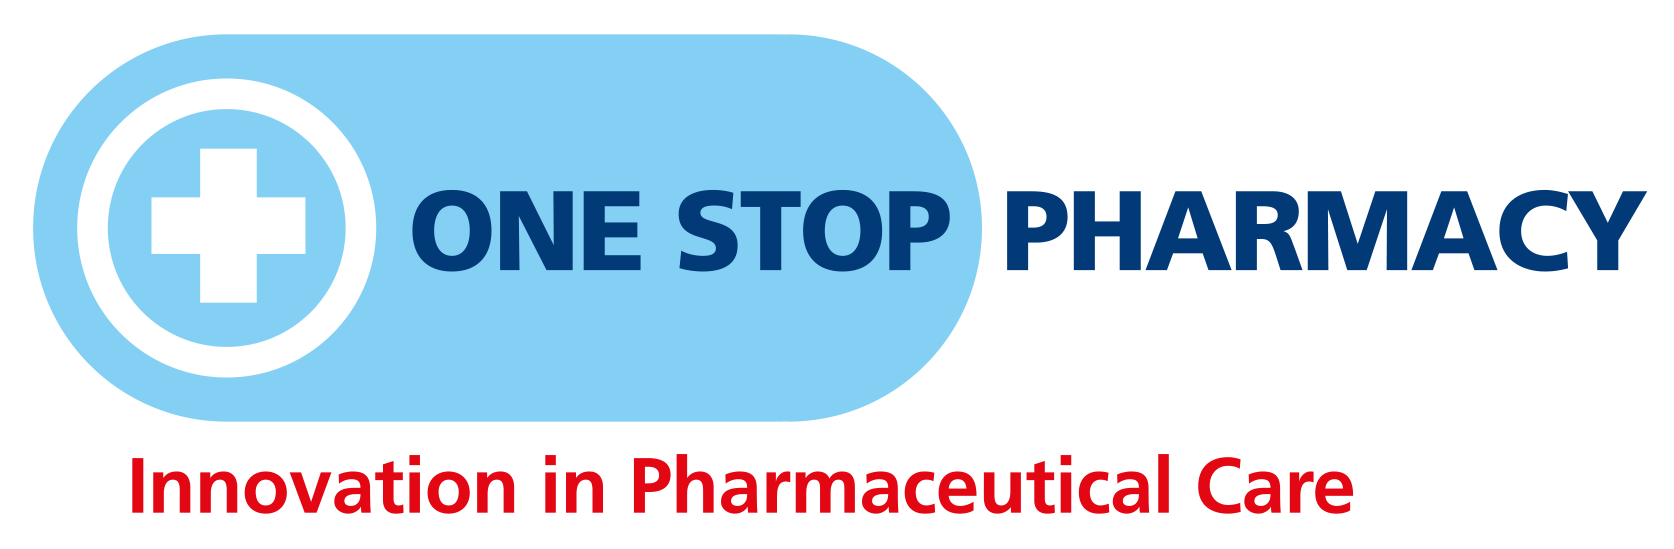 One Stop Pharmacy Ltd